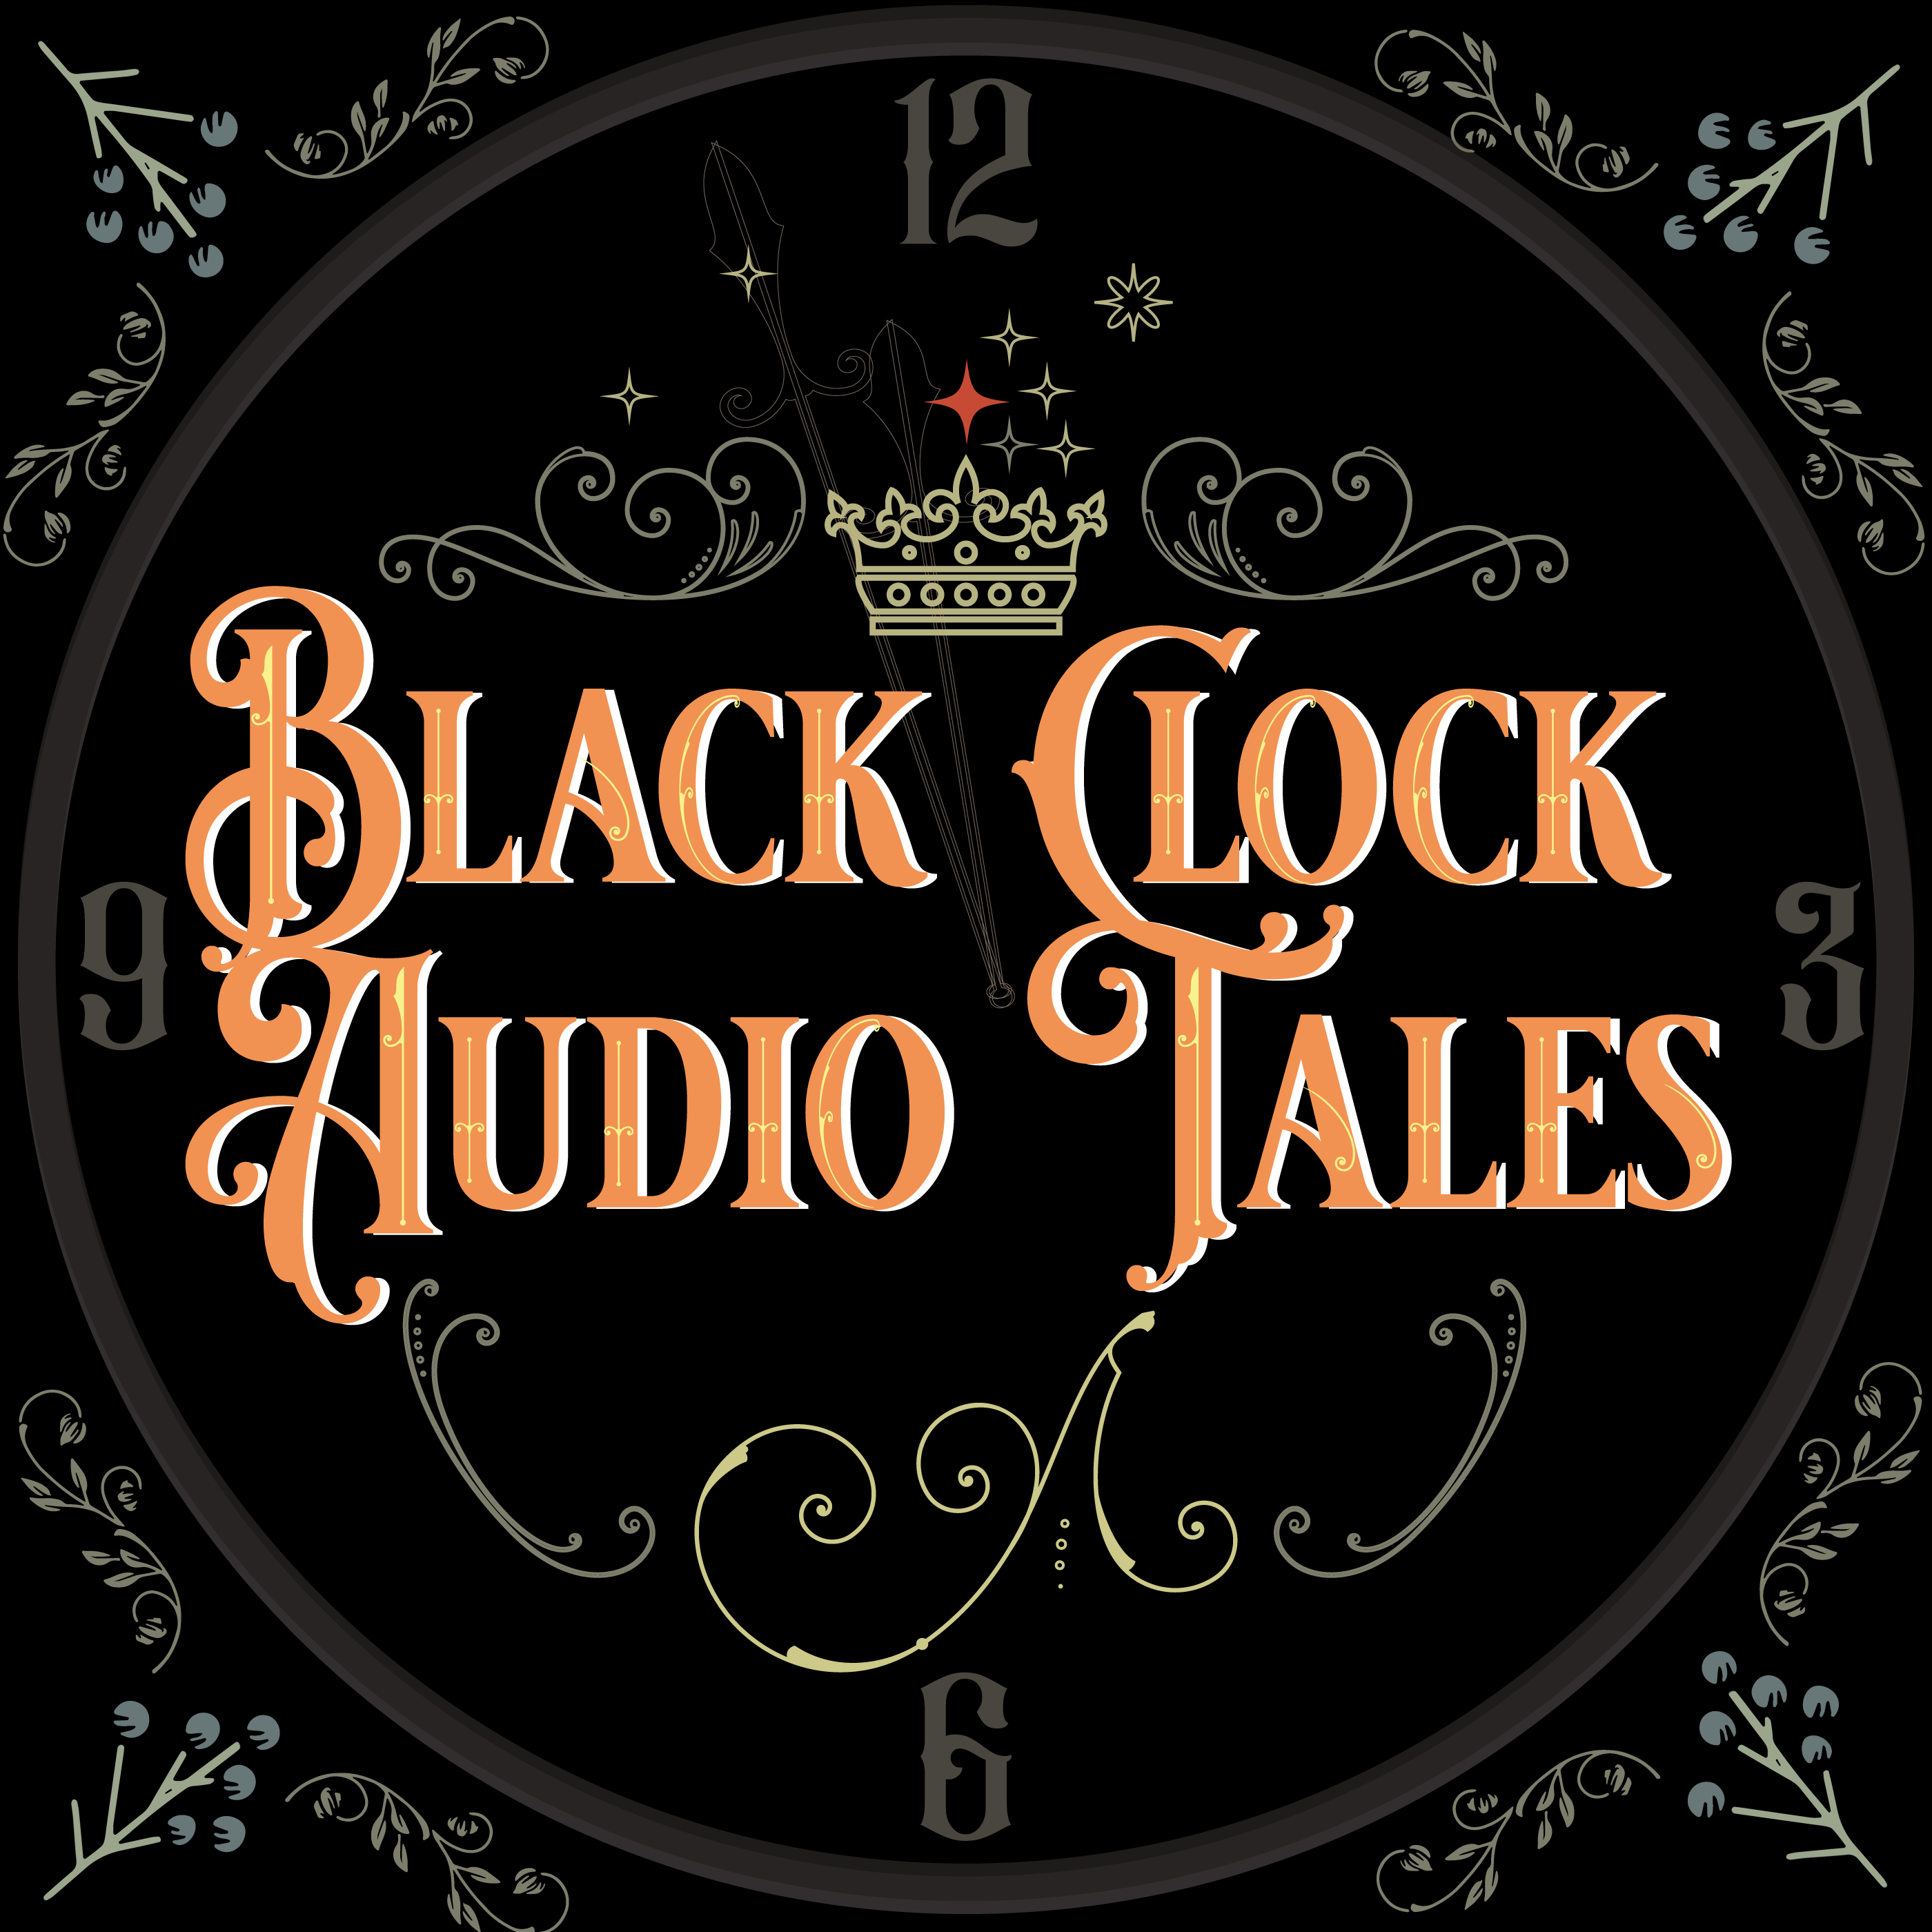 Black Clock Audio Tales Book Club/People's Guide to the Cthulhu Mythos: Audio Books, Science Fiction, Folklore, Gothic Literature, Classic Horror, Weird Fiction, Lovecraft & Lovecraftiana